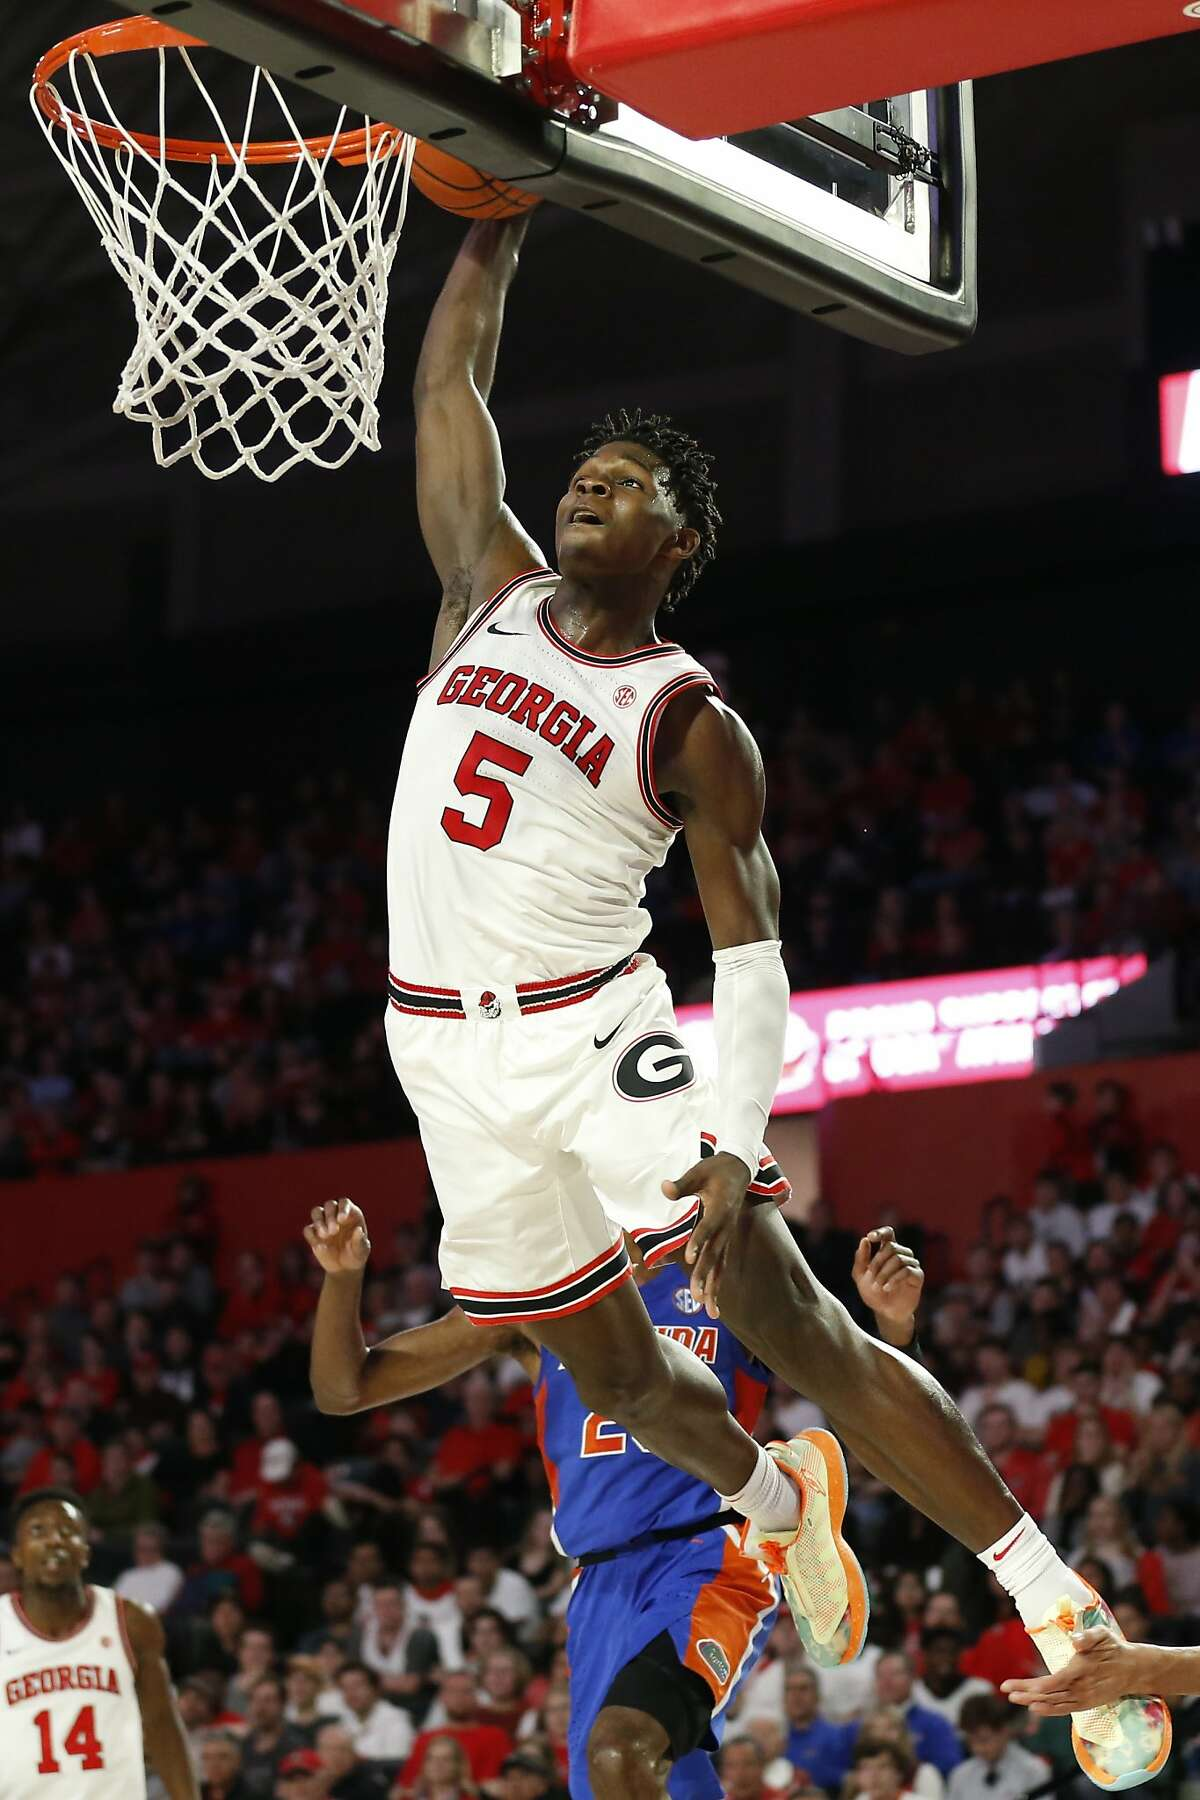 FILE - In this March 4, 2020, file photo, Georgia's Anthony Edwards dunks against Florida during an NCAA college basketball game in Athens, Ga. Edwards was selected to the Associated Press All-SEC first team announced Tuesday, March 10, 2020. Edwards was also named the AP SEC Newcomer of the Year. (Joshua L. Jones/Athens Banner-Herald via AP, File)